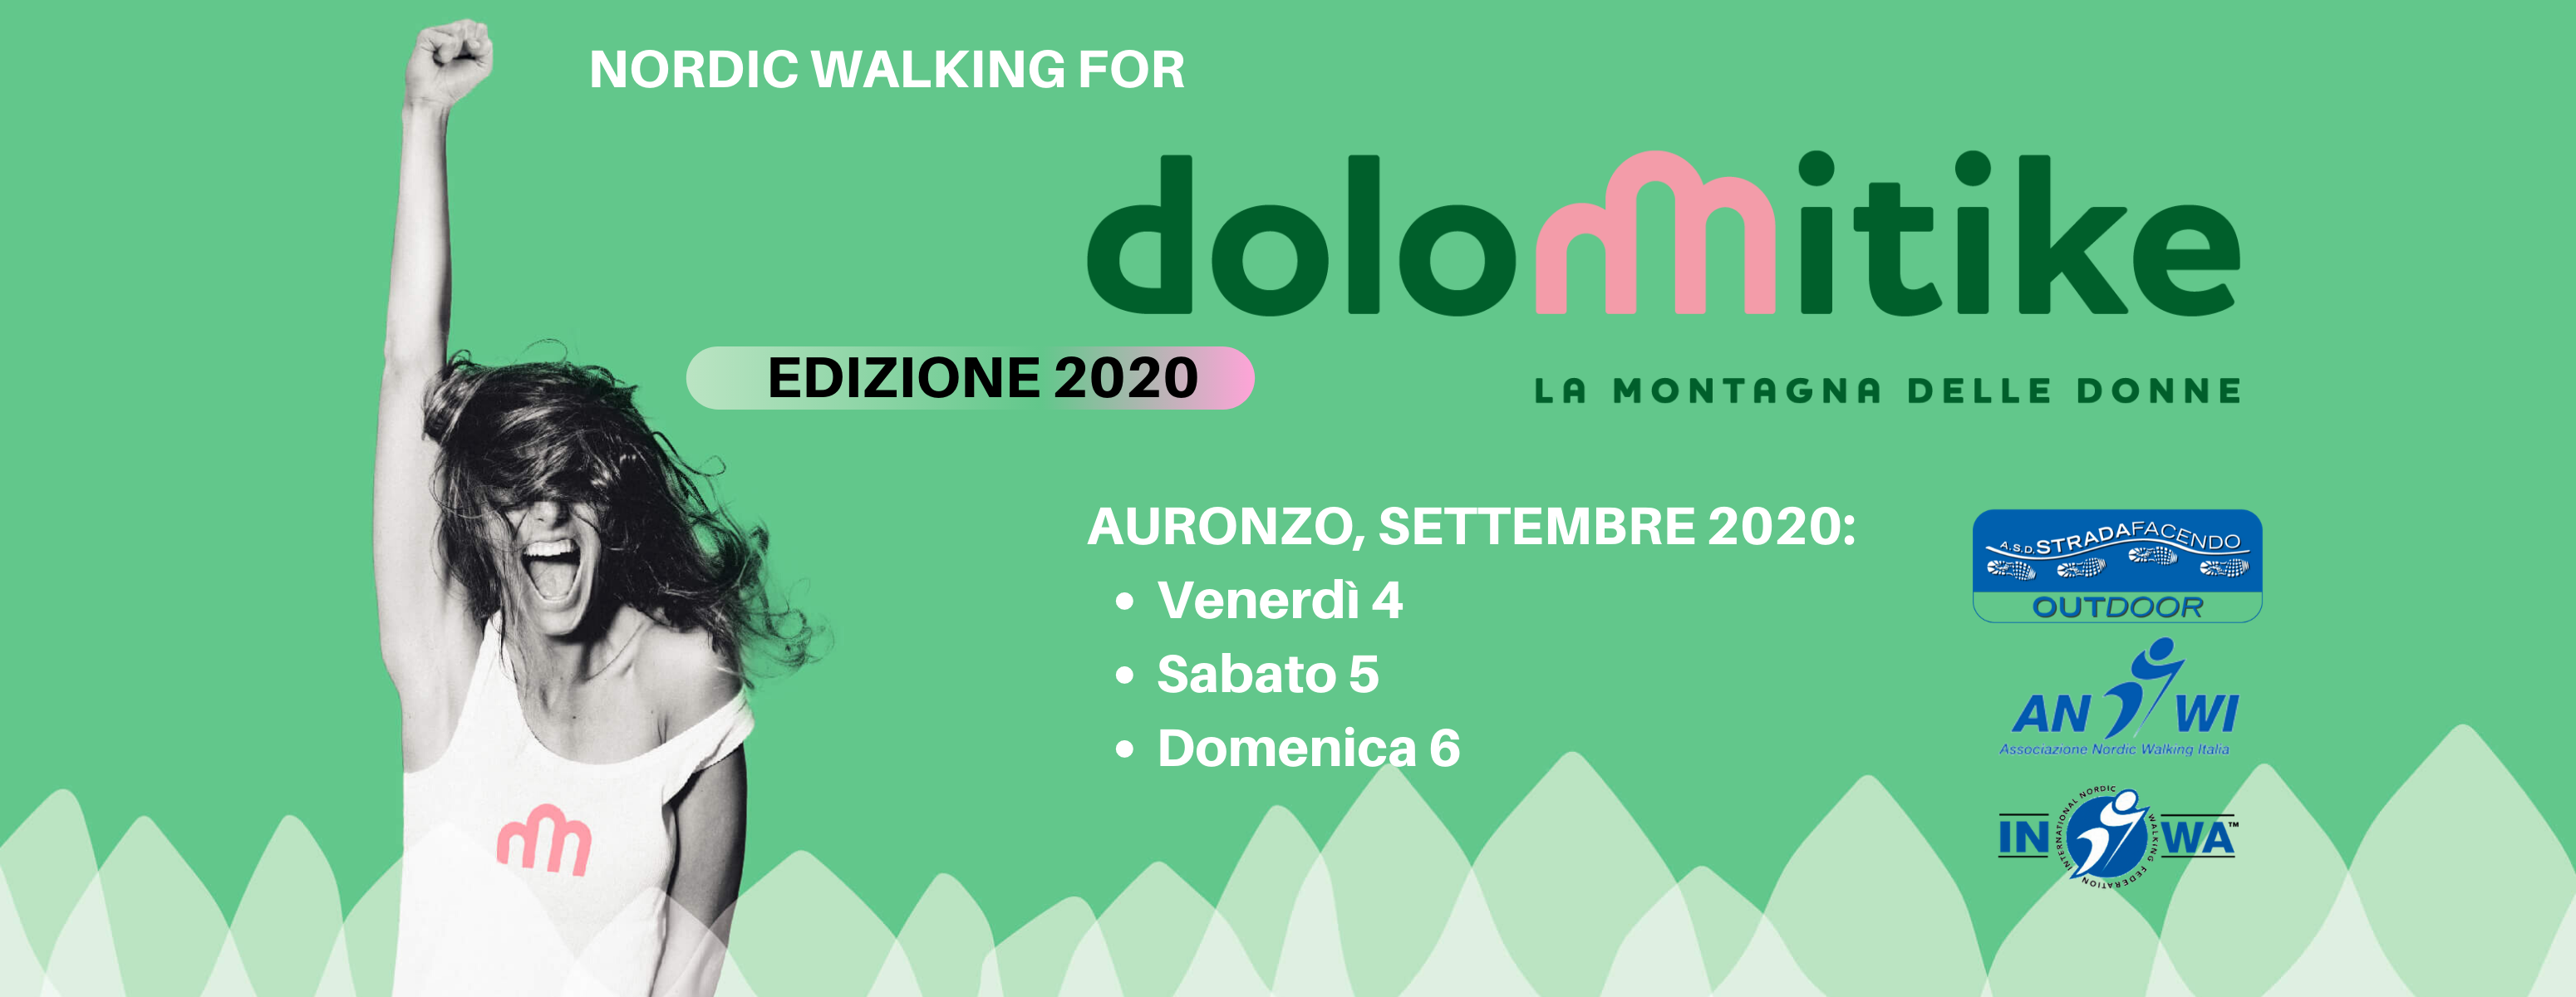 nordic walking dolomitike 2020